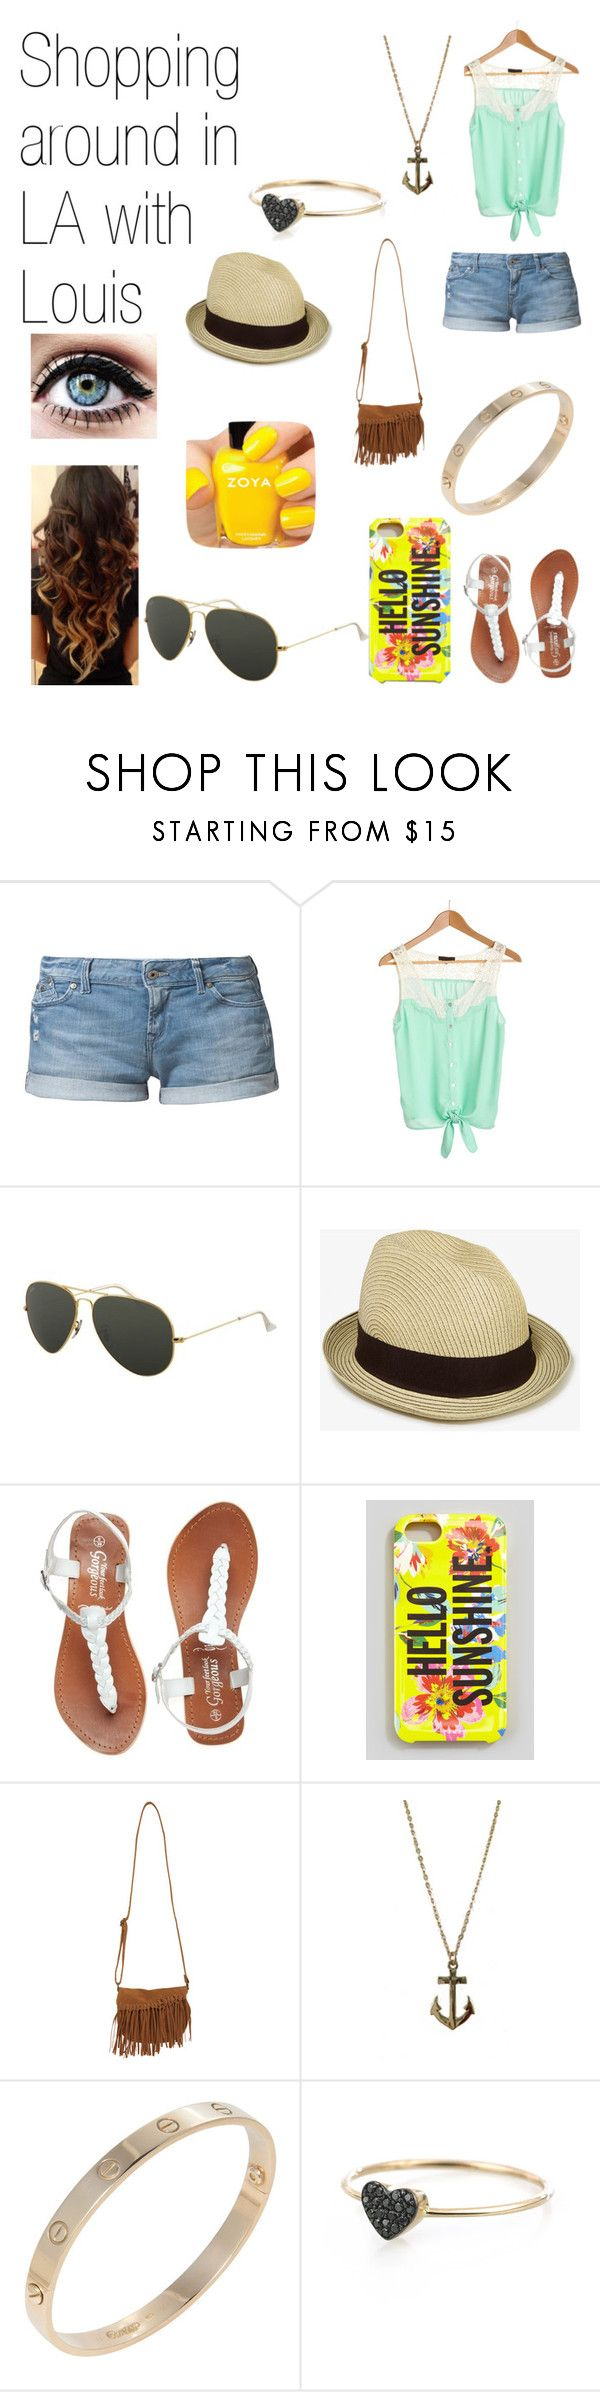 """""""Shopping around in LA with Louis."""" by one-direction-date-outfits ❤ liked on Polyvore featuring Roxy, Ray-Ban, Forever 21, Kate Spade, Wet Seal, Zoya, Jules Smith, Cartier and Kismet by Milka"""